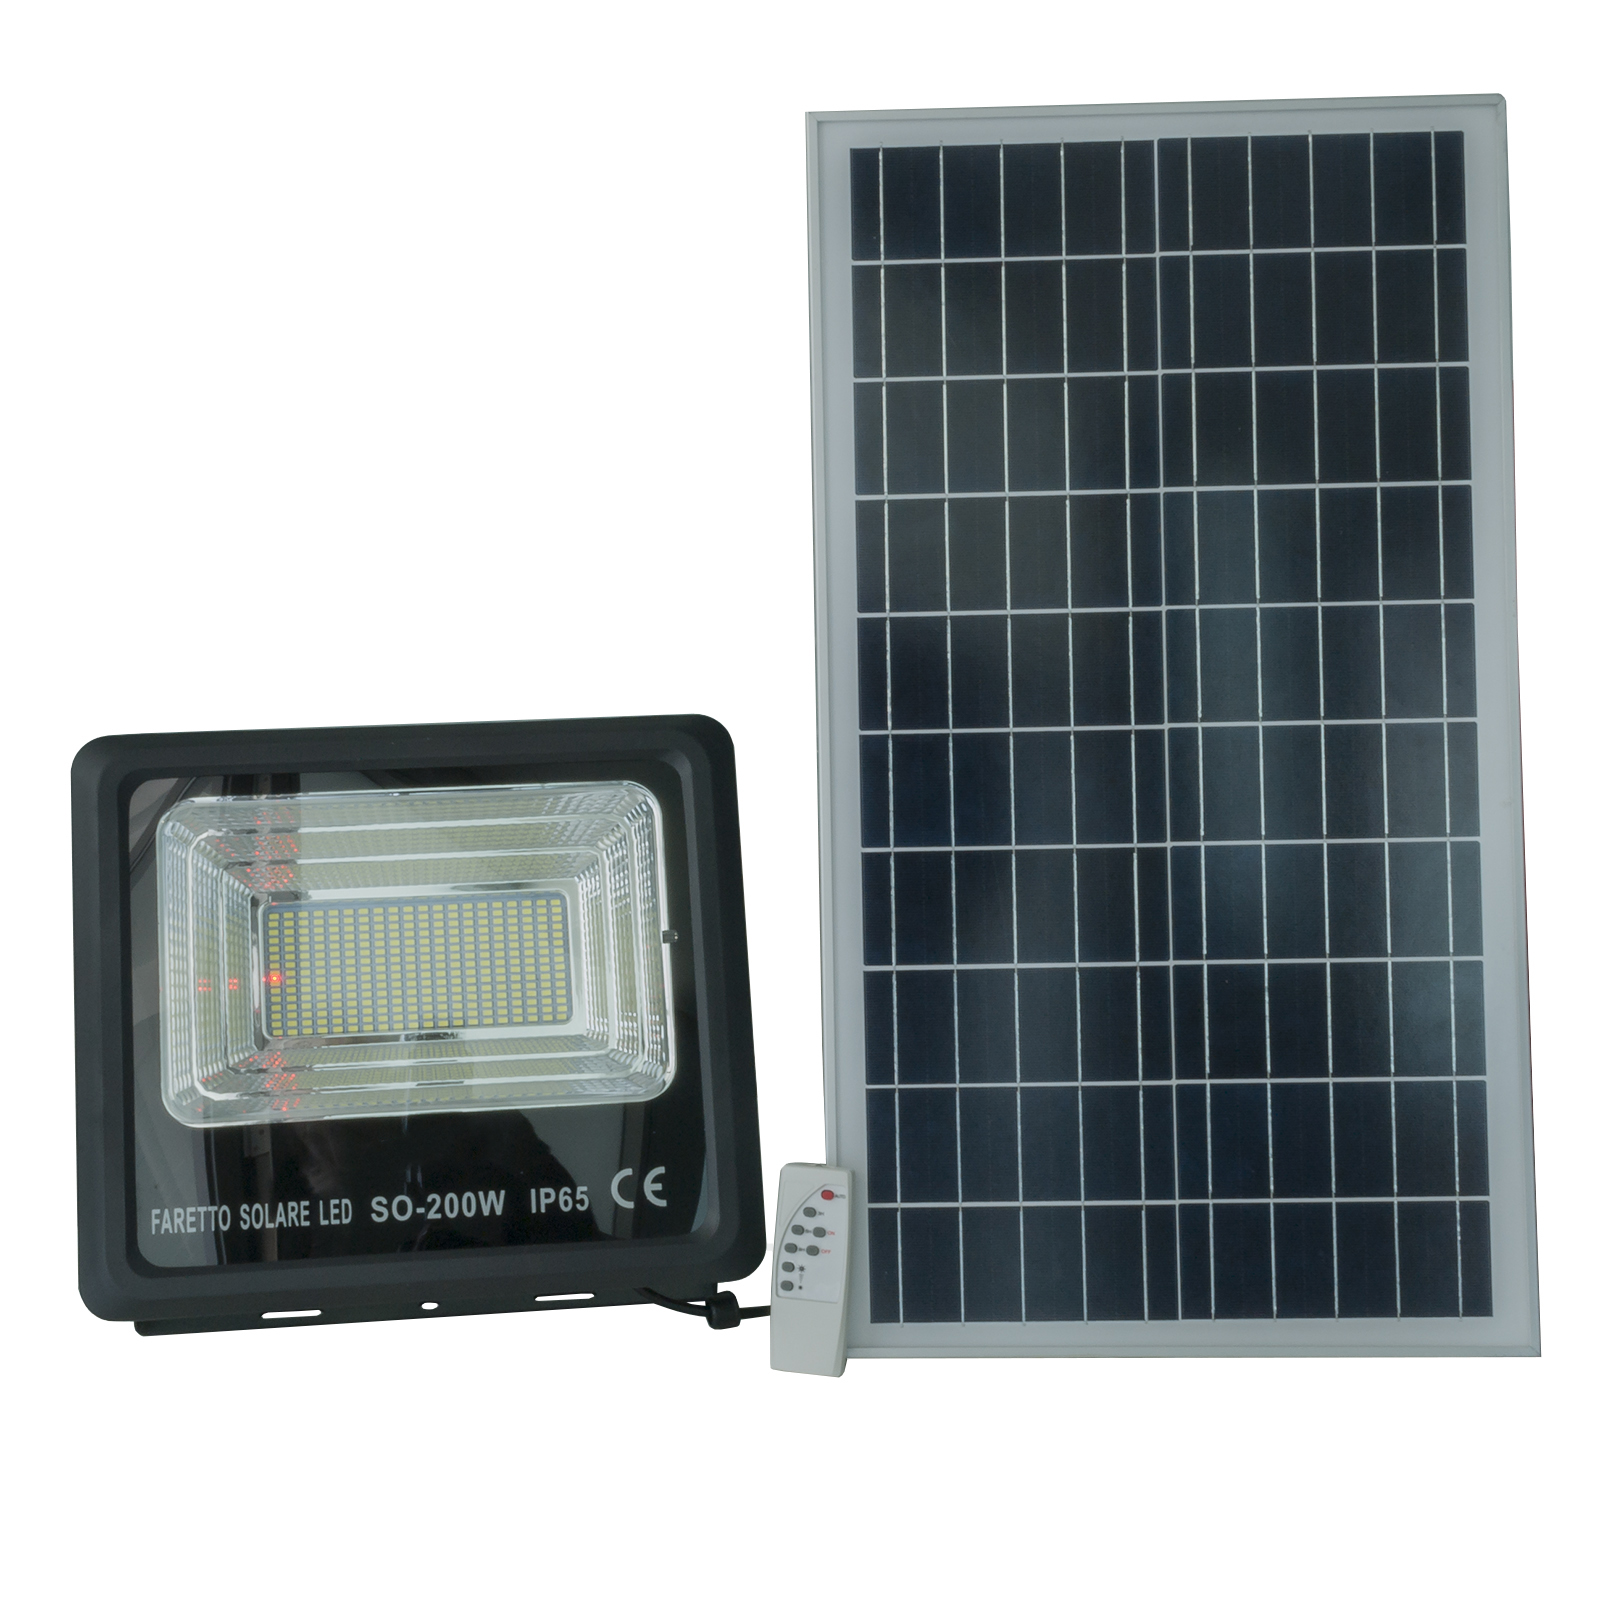 LED-strahler 200W solar-twilight IP65 photovoltaik-panel fernbedienung